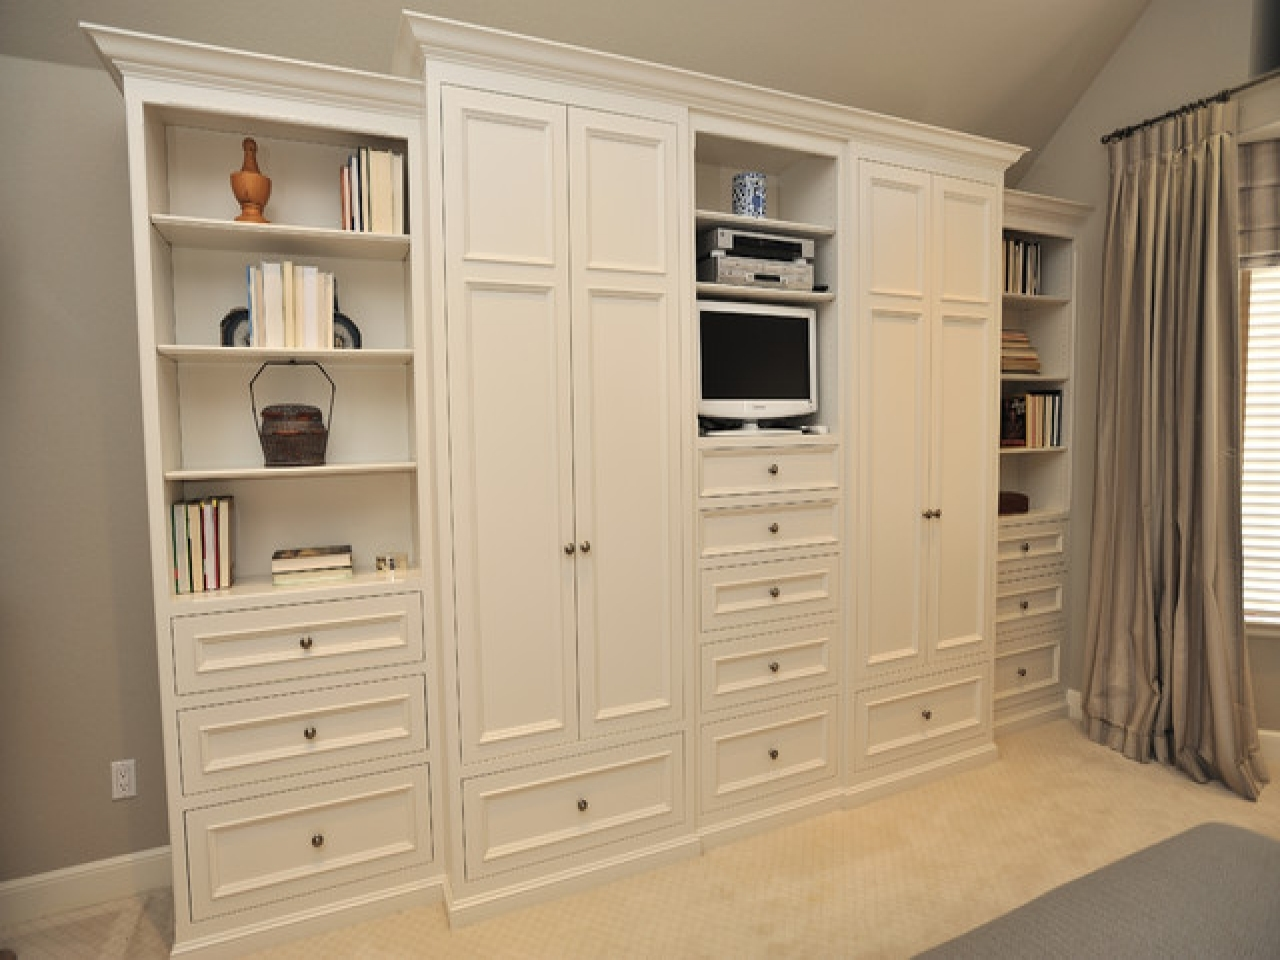 Wall Cabinets For Bedroom Storage